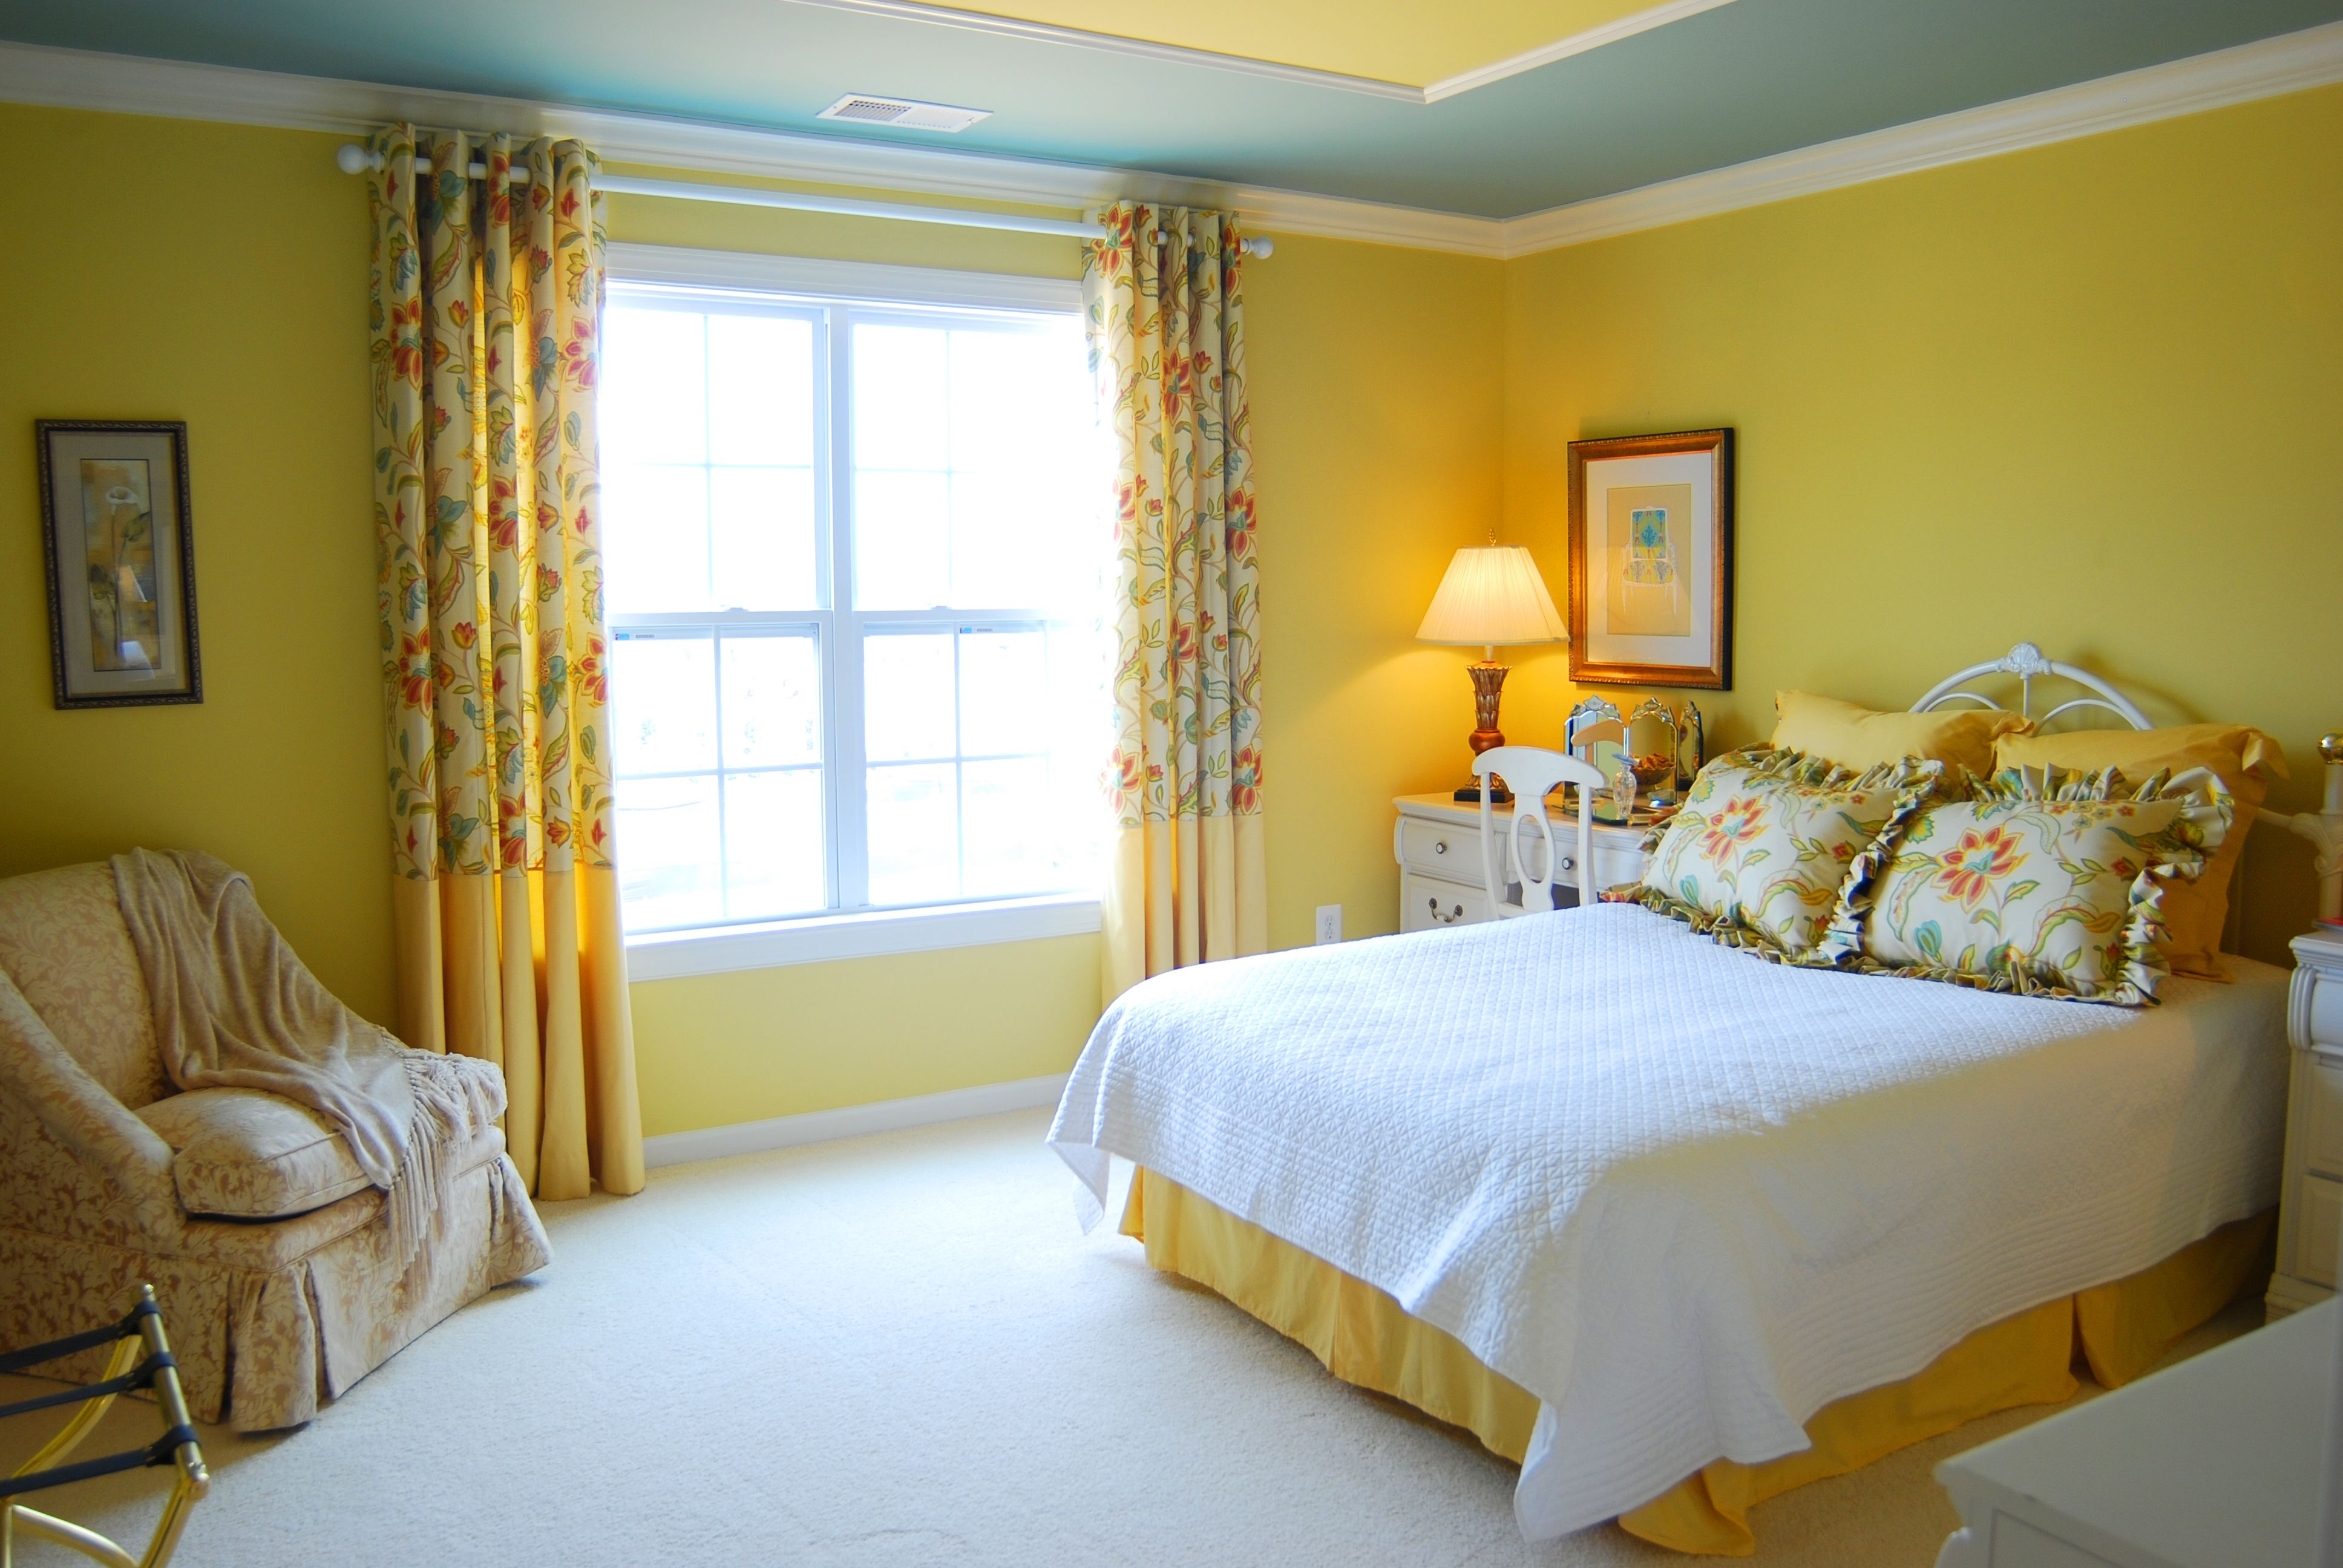 catchy yellow teenage girls bedroom paint color idea with on paint colors designers use id=75249